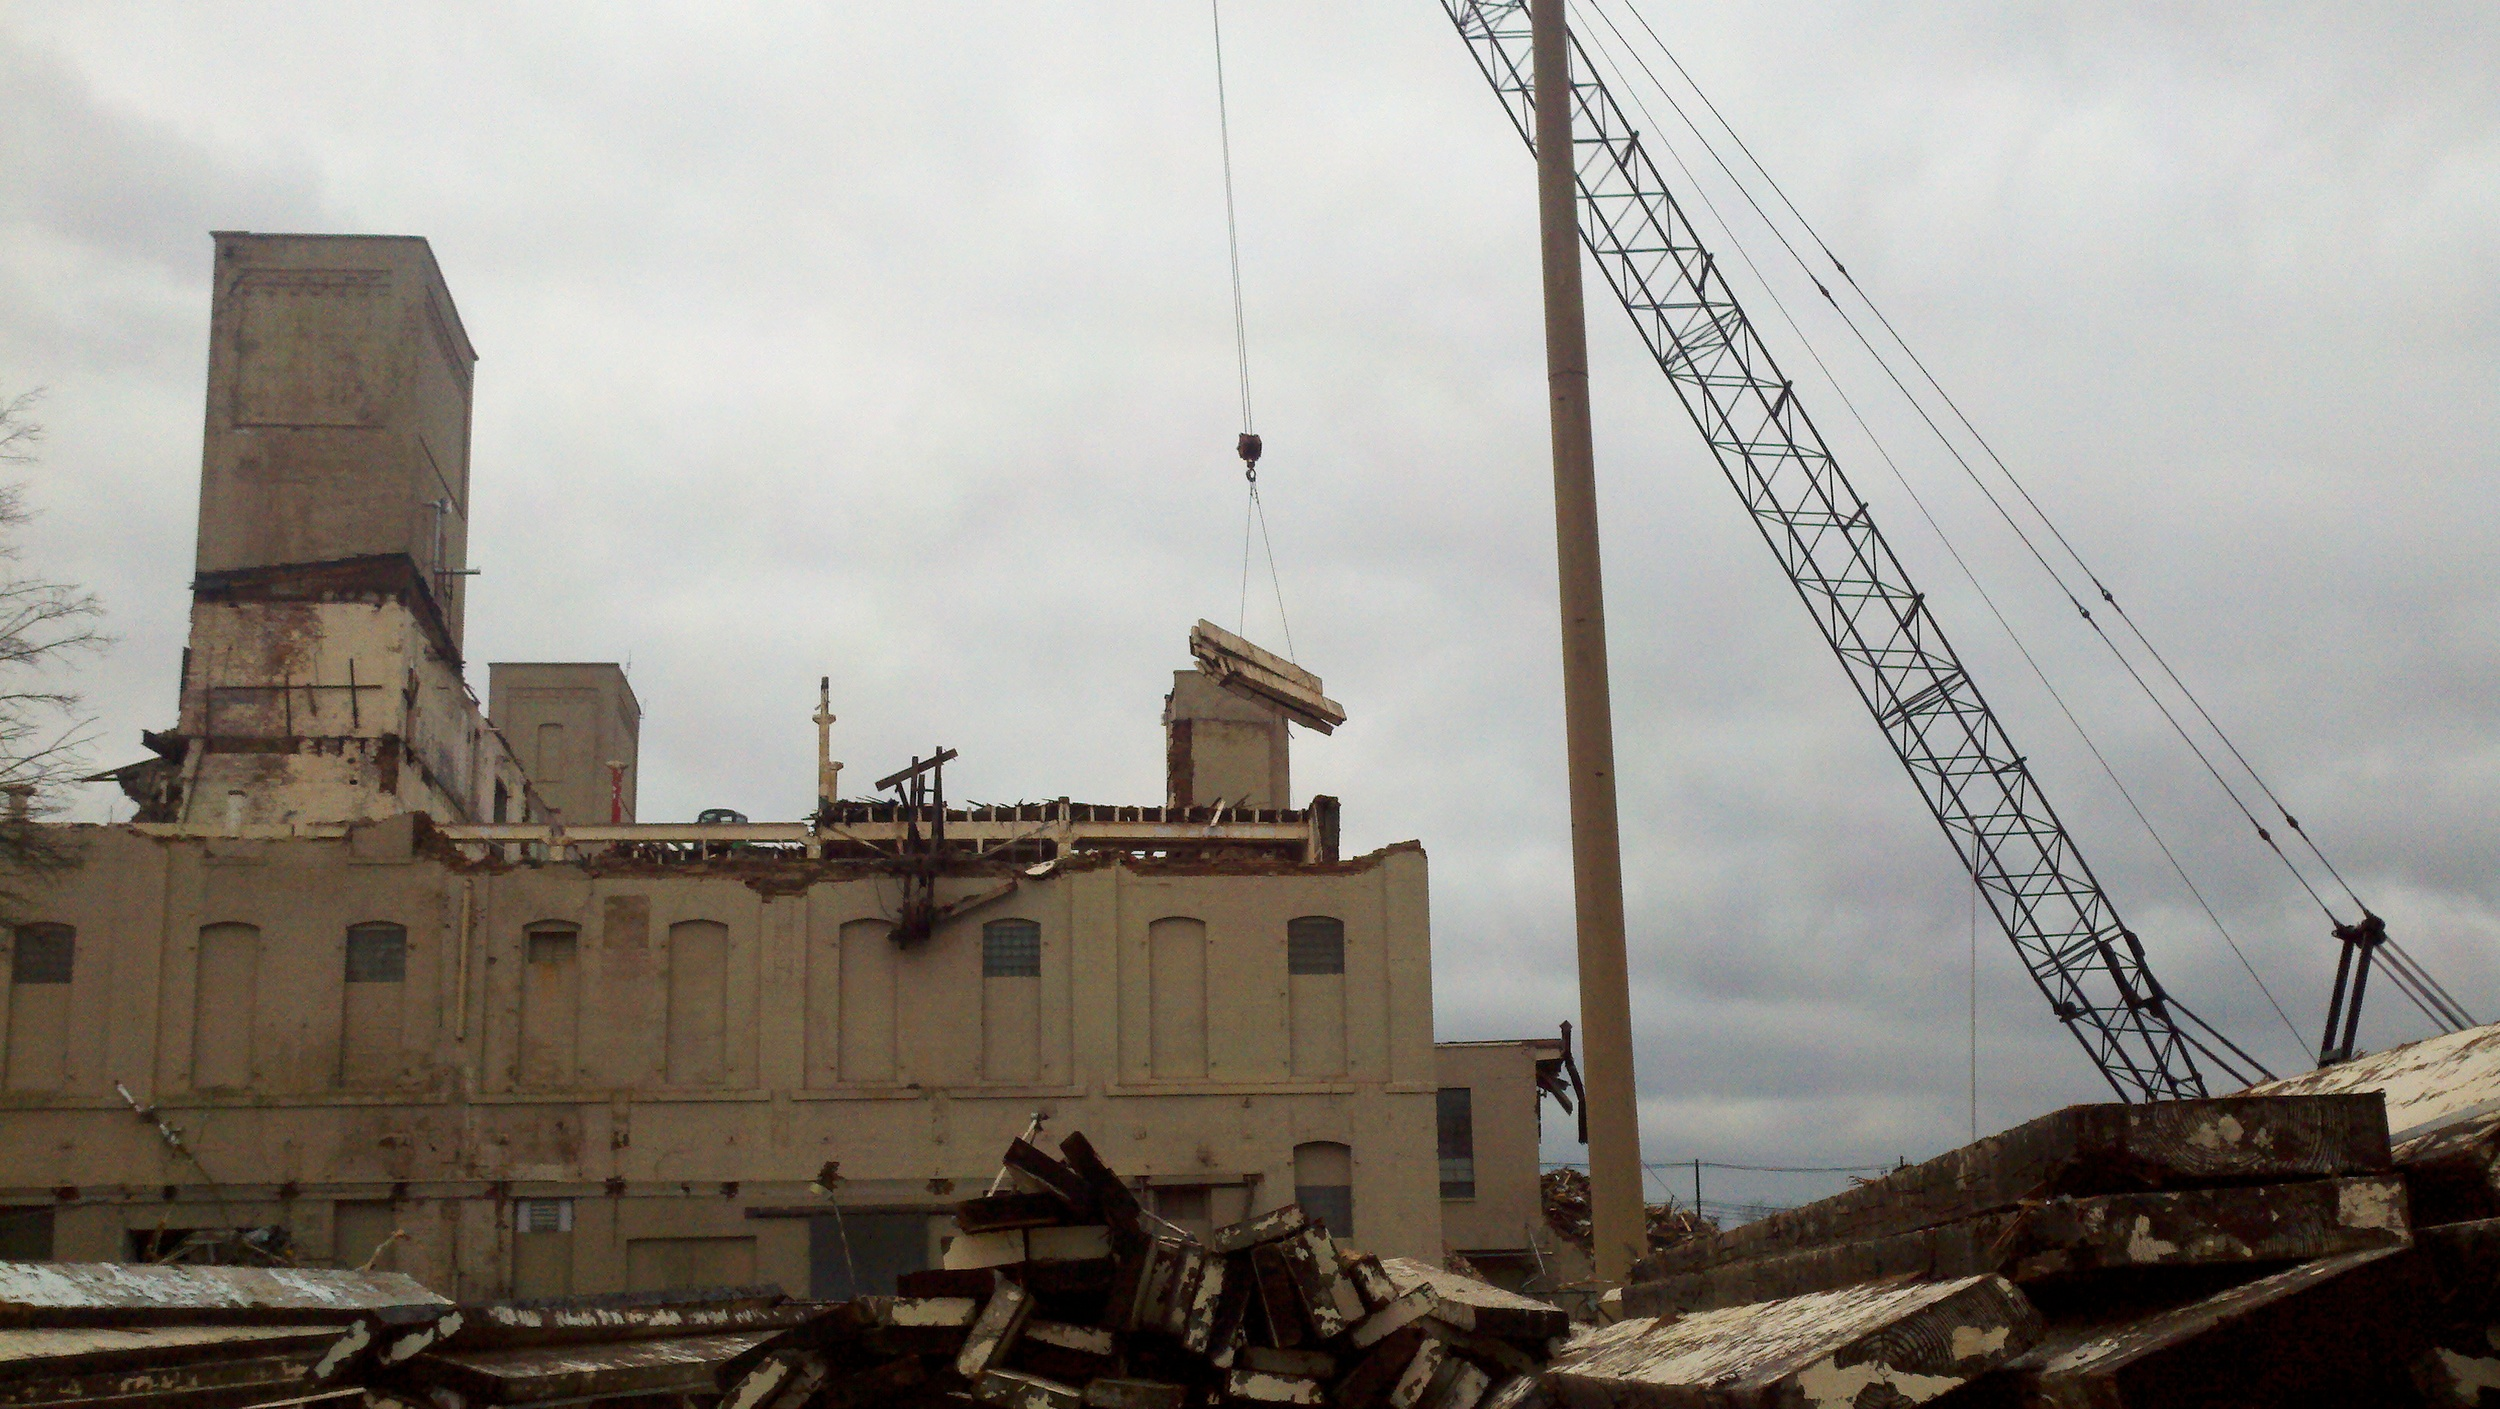 Demolition of Phillip Morris Factory, Louisville, KY.